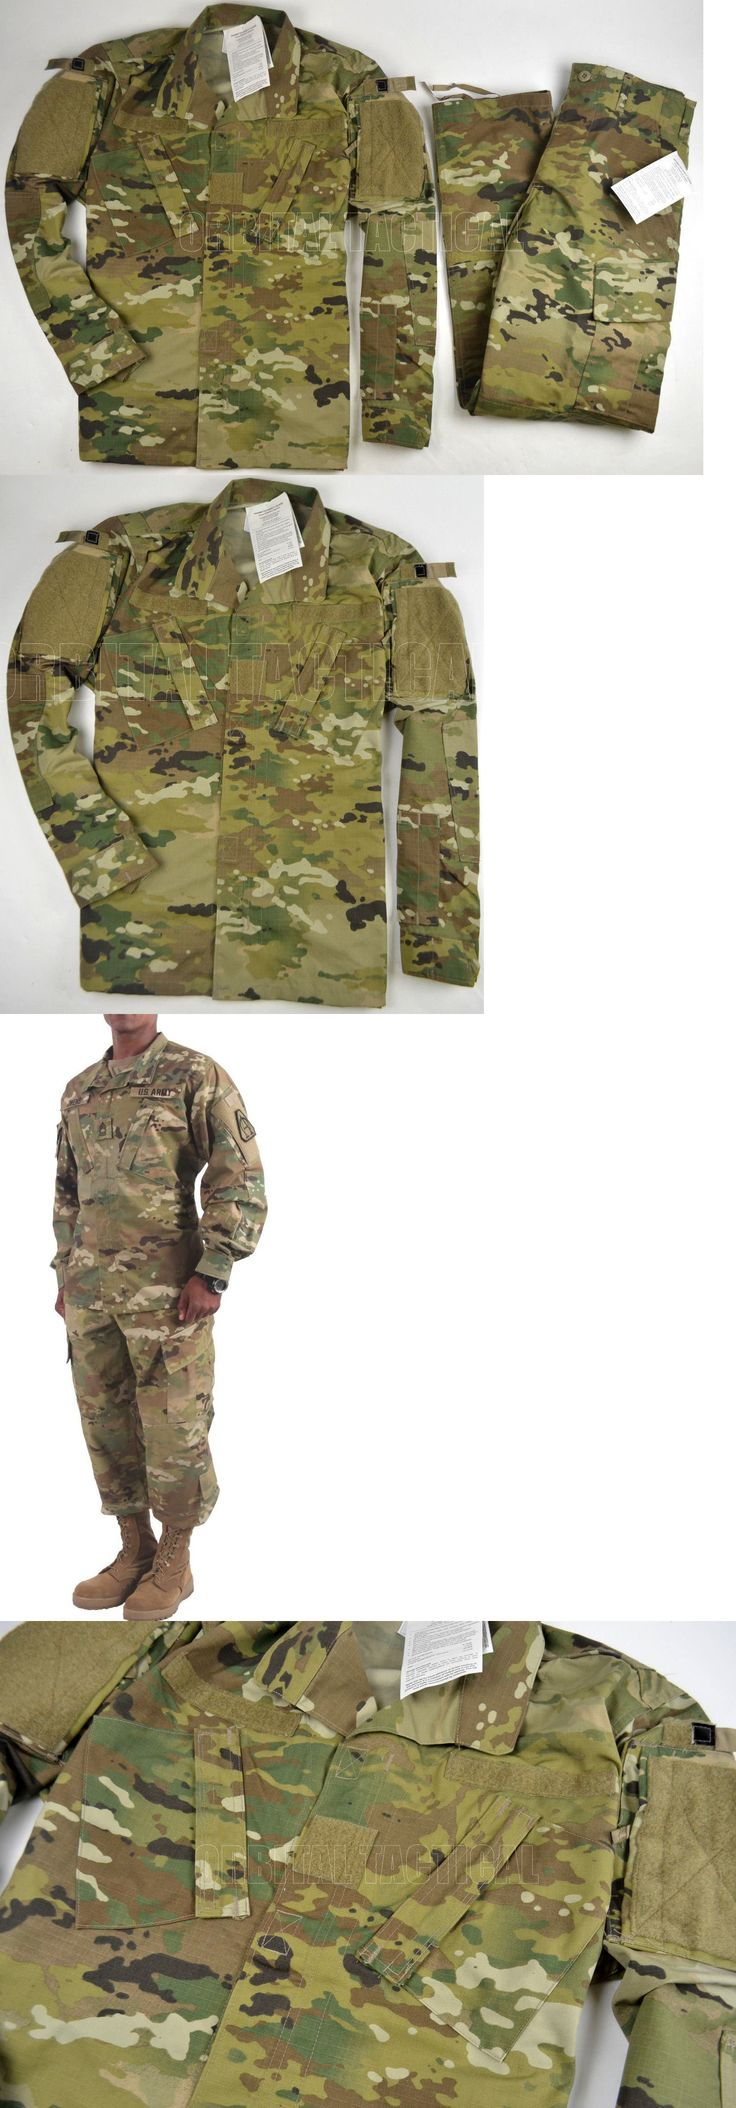 Tactical Clothing 177896: Scorpion W2 Camo Army Combat Usgi Military Ocp Uniform Jacket And Pants Set BUY IT NOW ONLY: $120.0